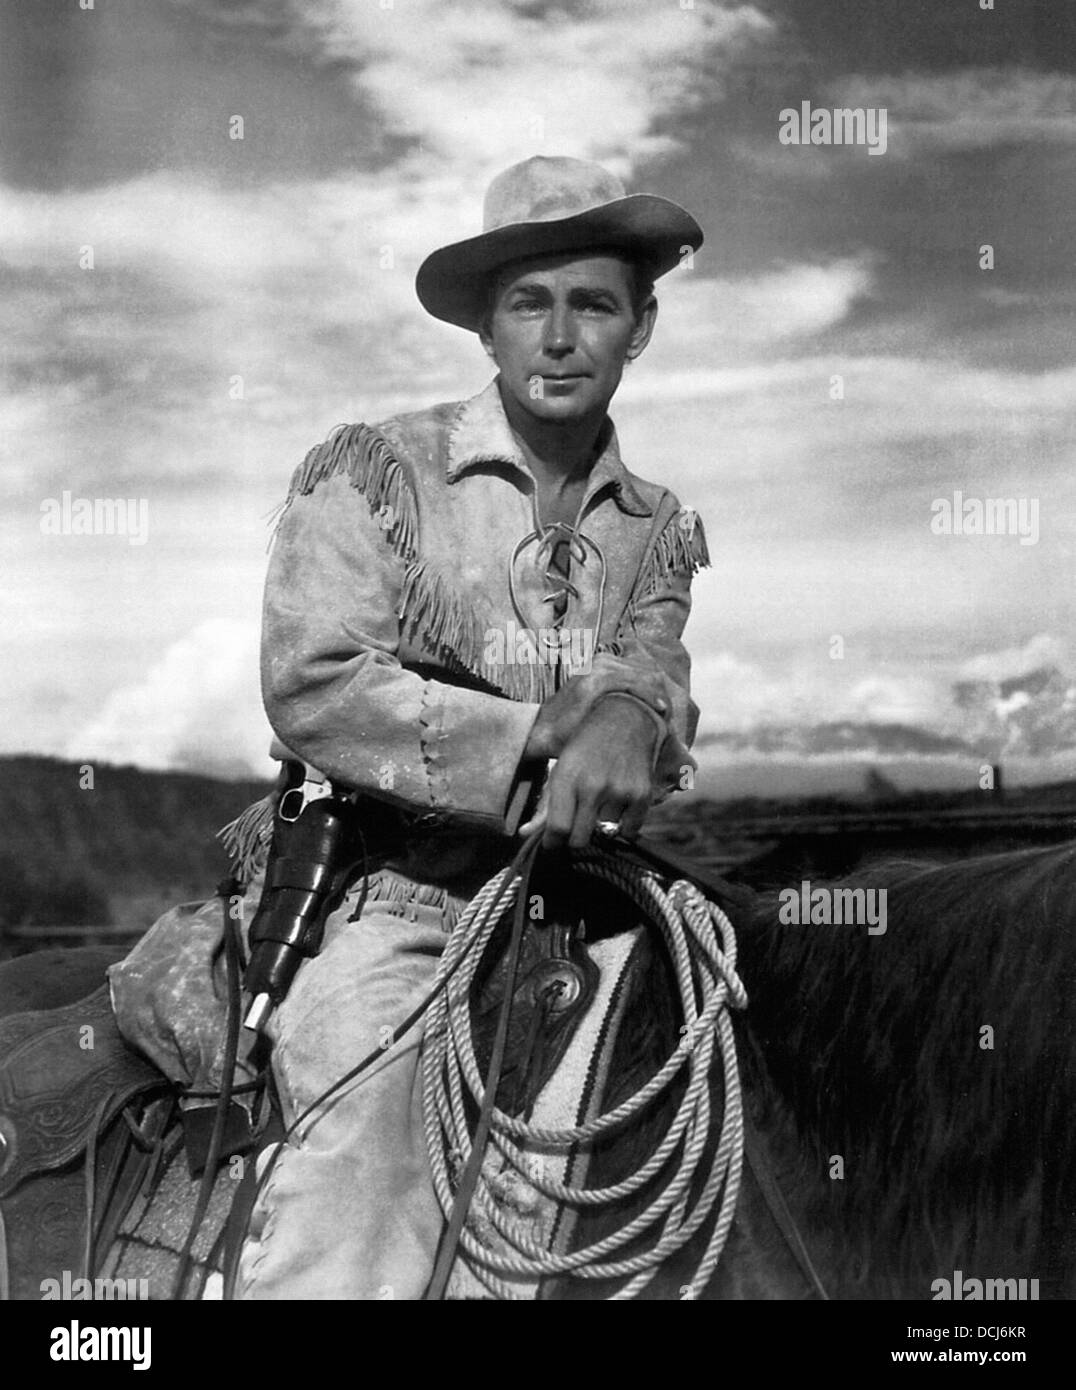 SHANE - Alan Ladd, - Directed by George Stevens - Paramount, 1953. - Stock Image